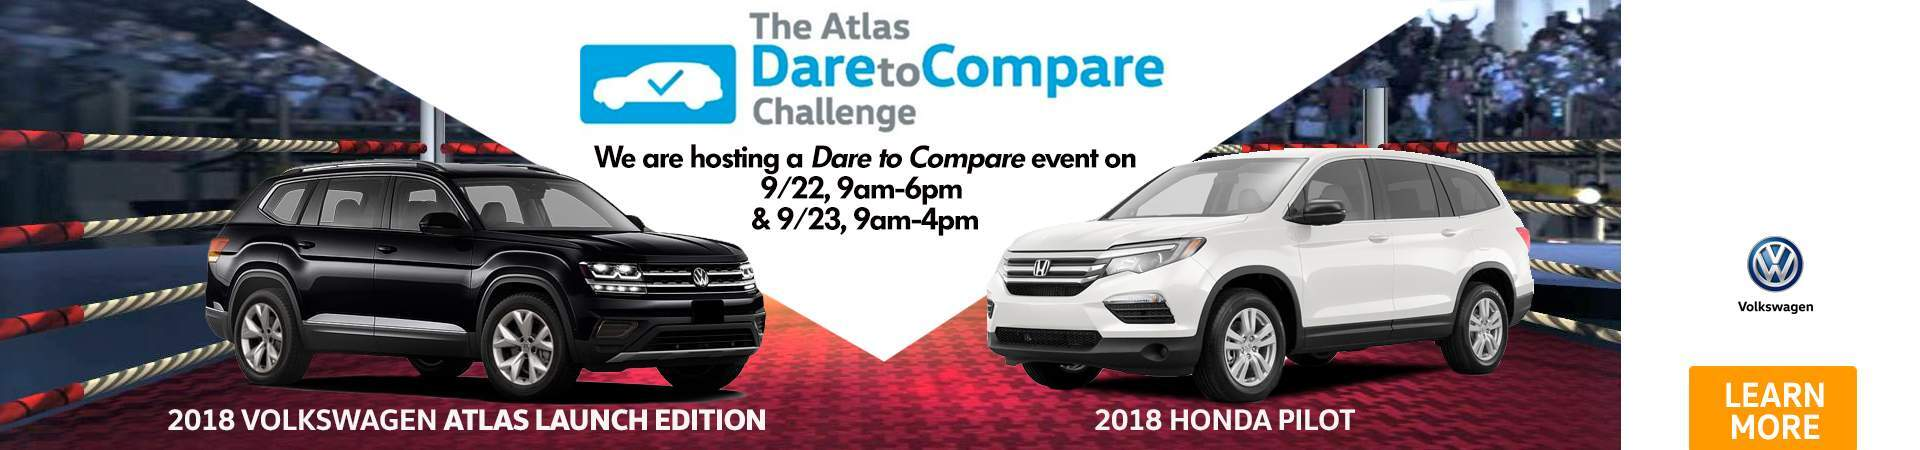 Dare to Compare Challenge